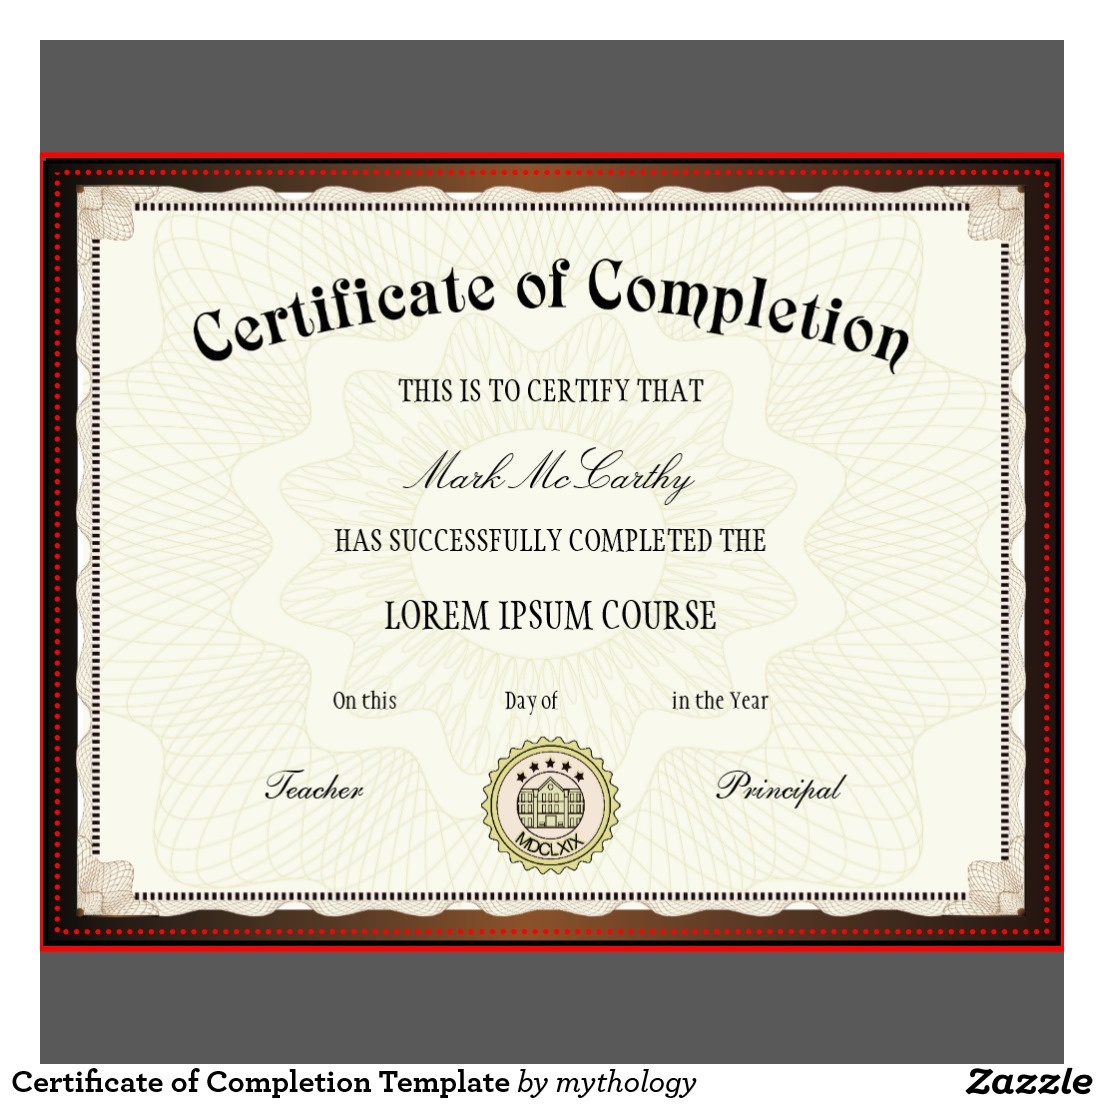 Free Printable Certificates | Certificate Templates - Certificate Of Completion Template Free Printable